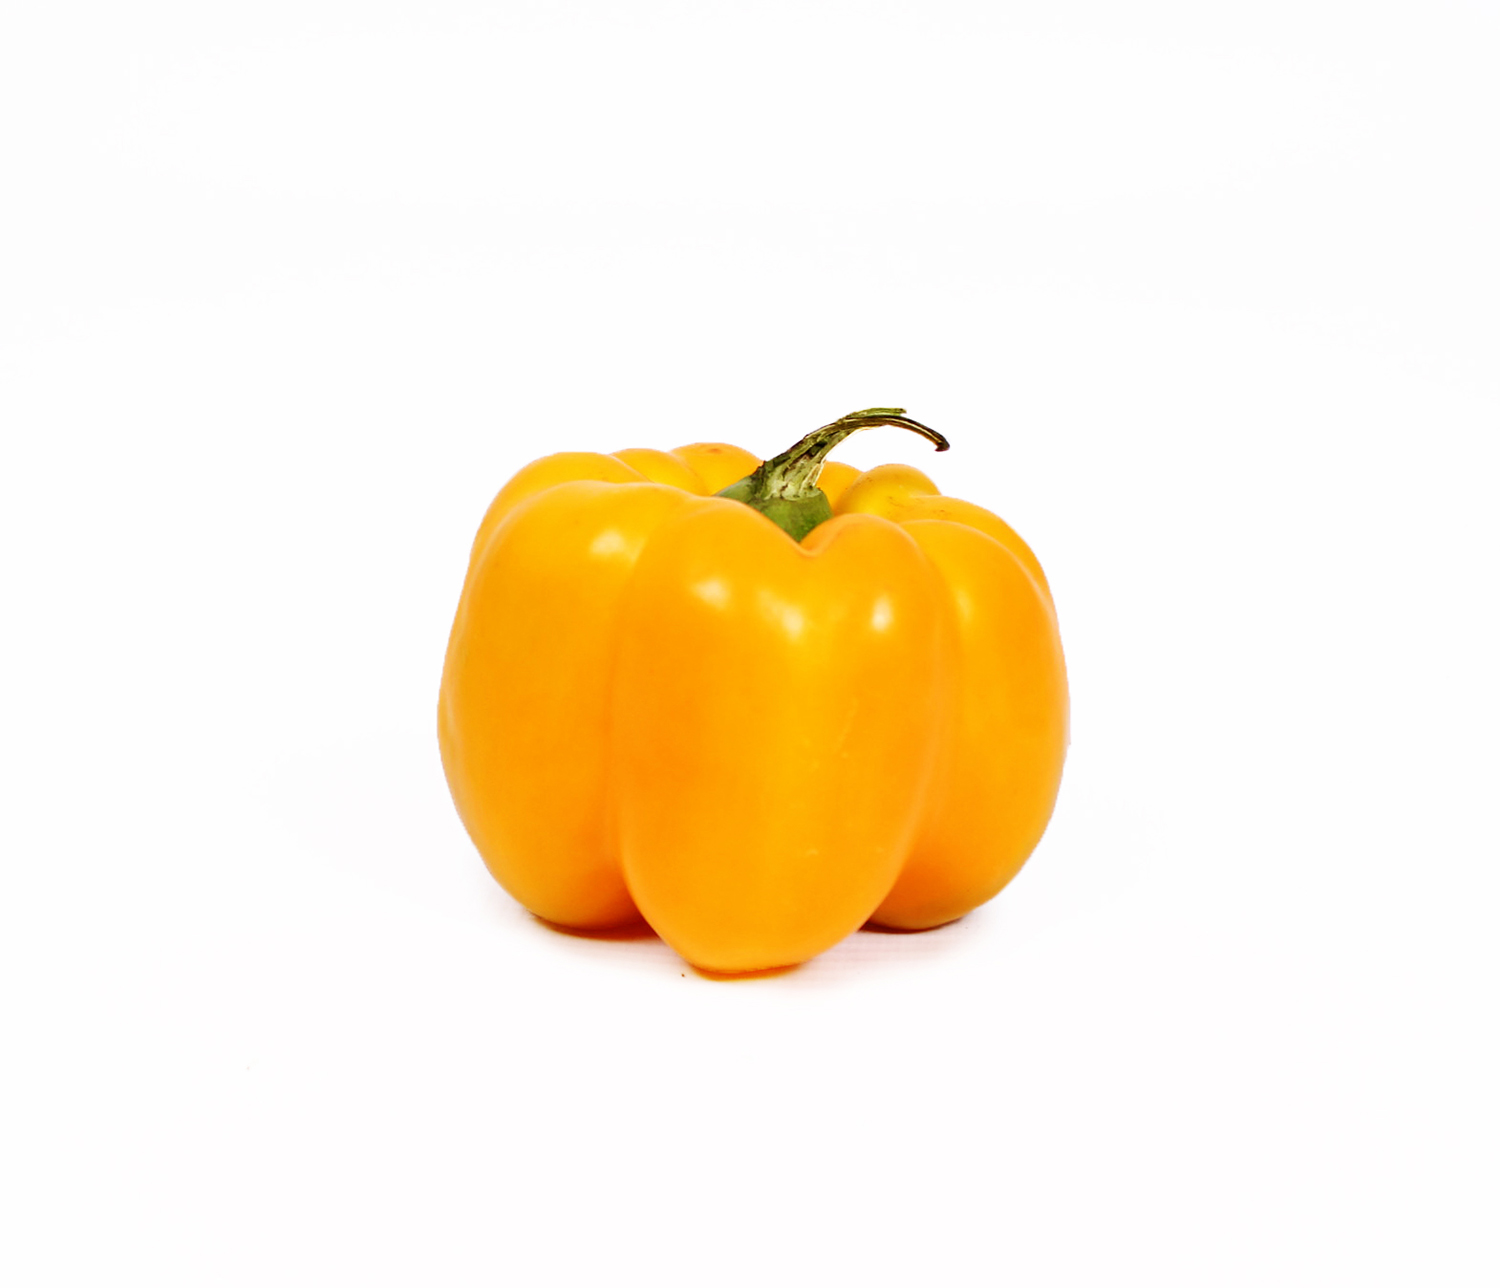 Yellow Capsicum Pepper Isolated on White Background